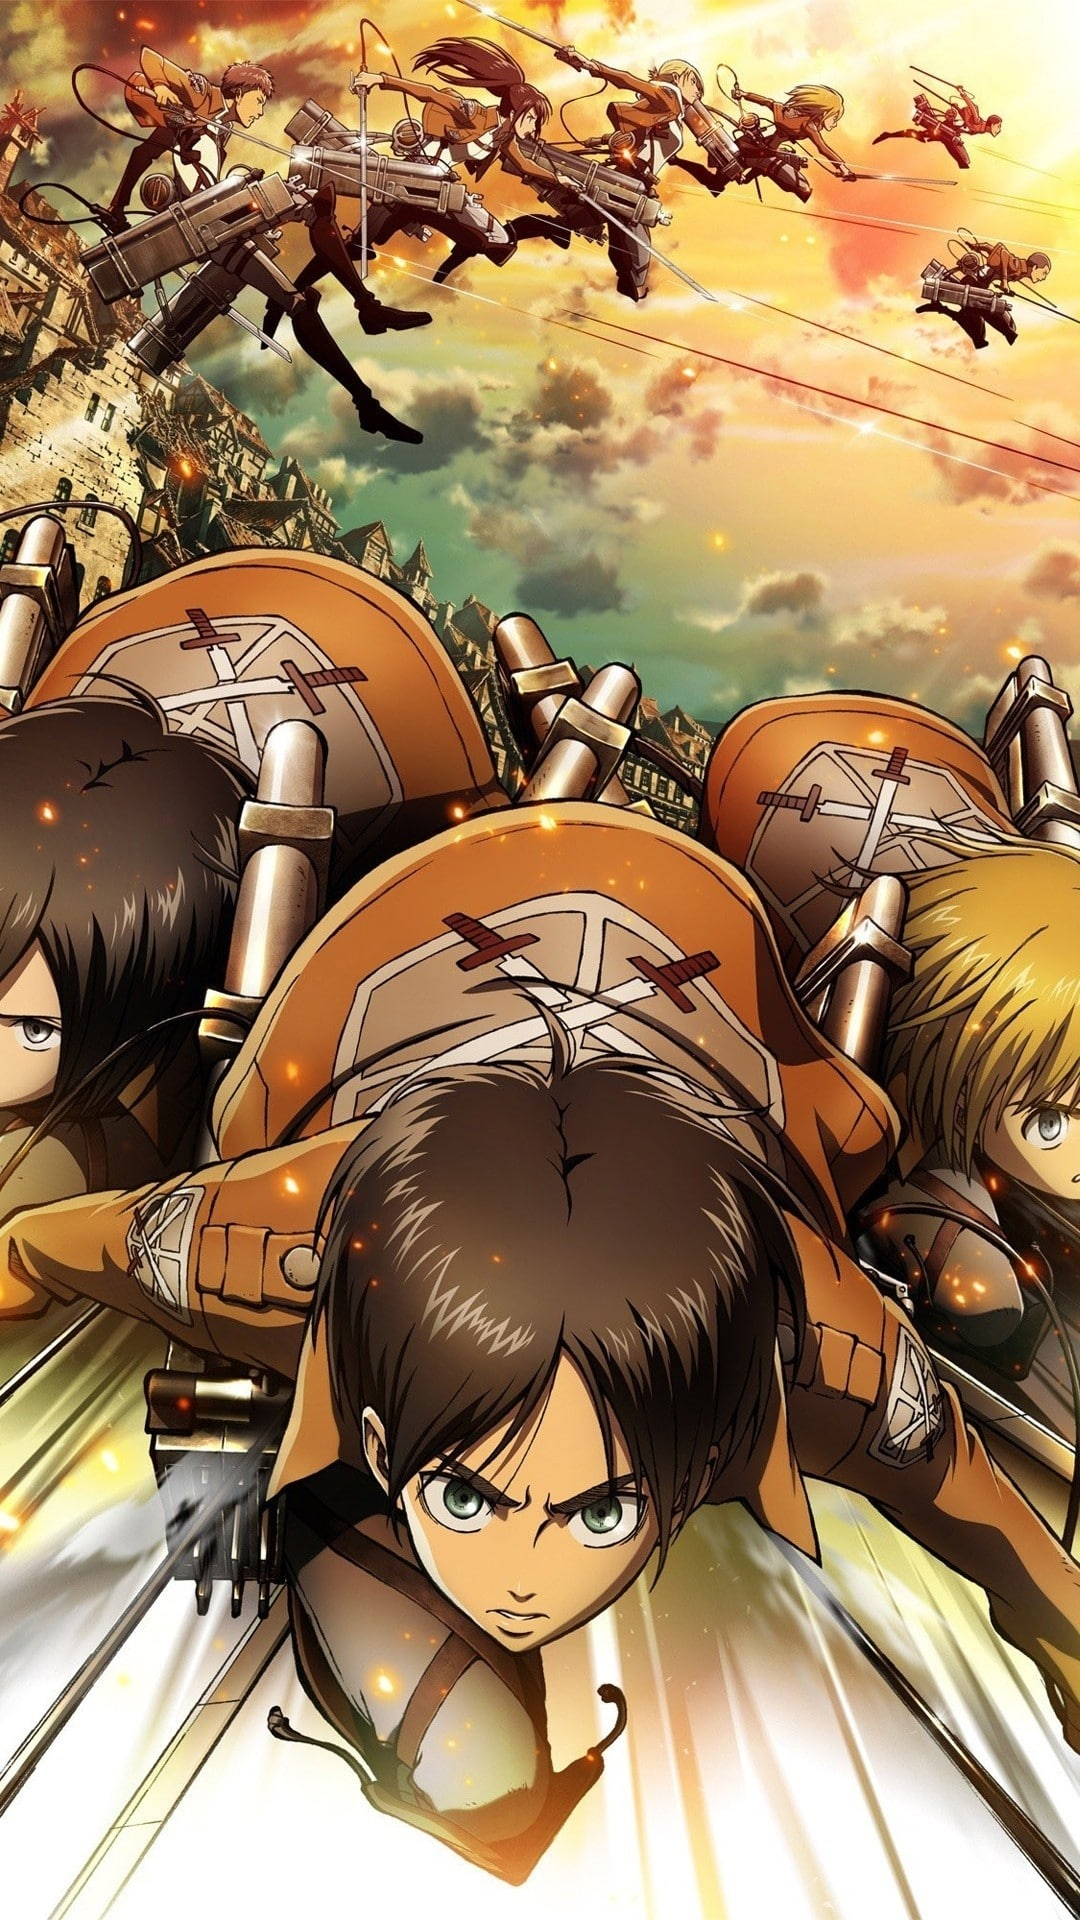 Advertisement platforms categories 1.0 user rating4 1/4 attack on titan 2 is an rpg available on windows that further unfolds the story from the original. Attack On Titan Wallpaper - KoLPaPer - Awesome Free HD ...